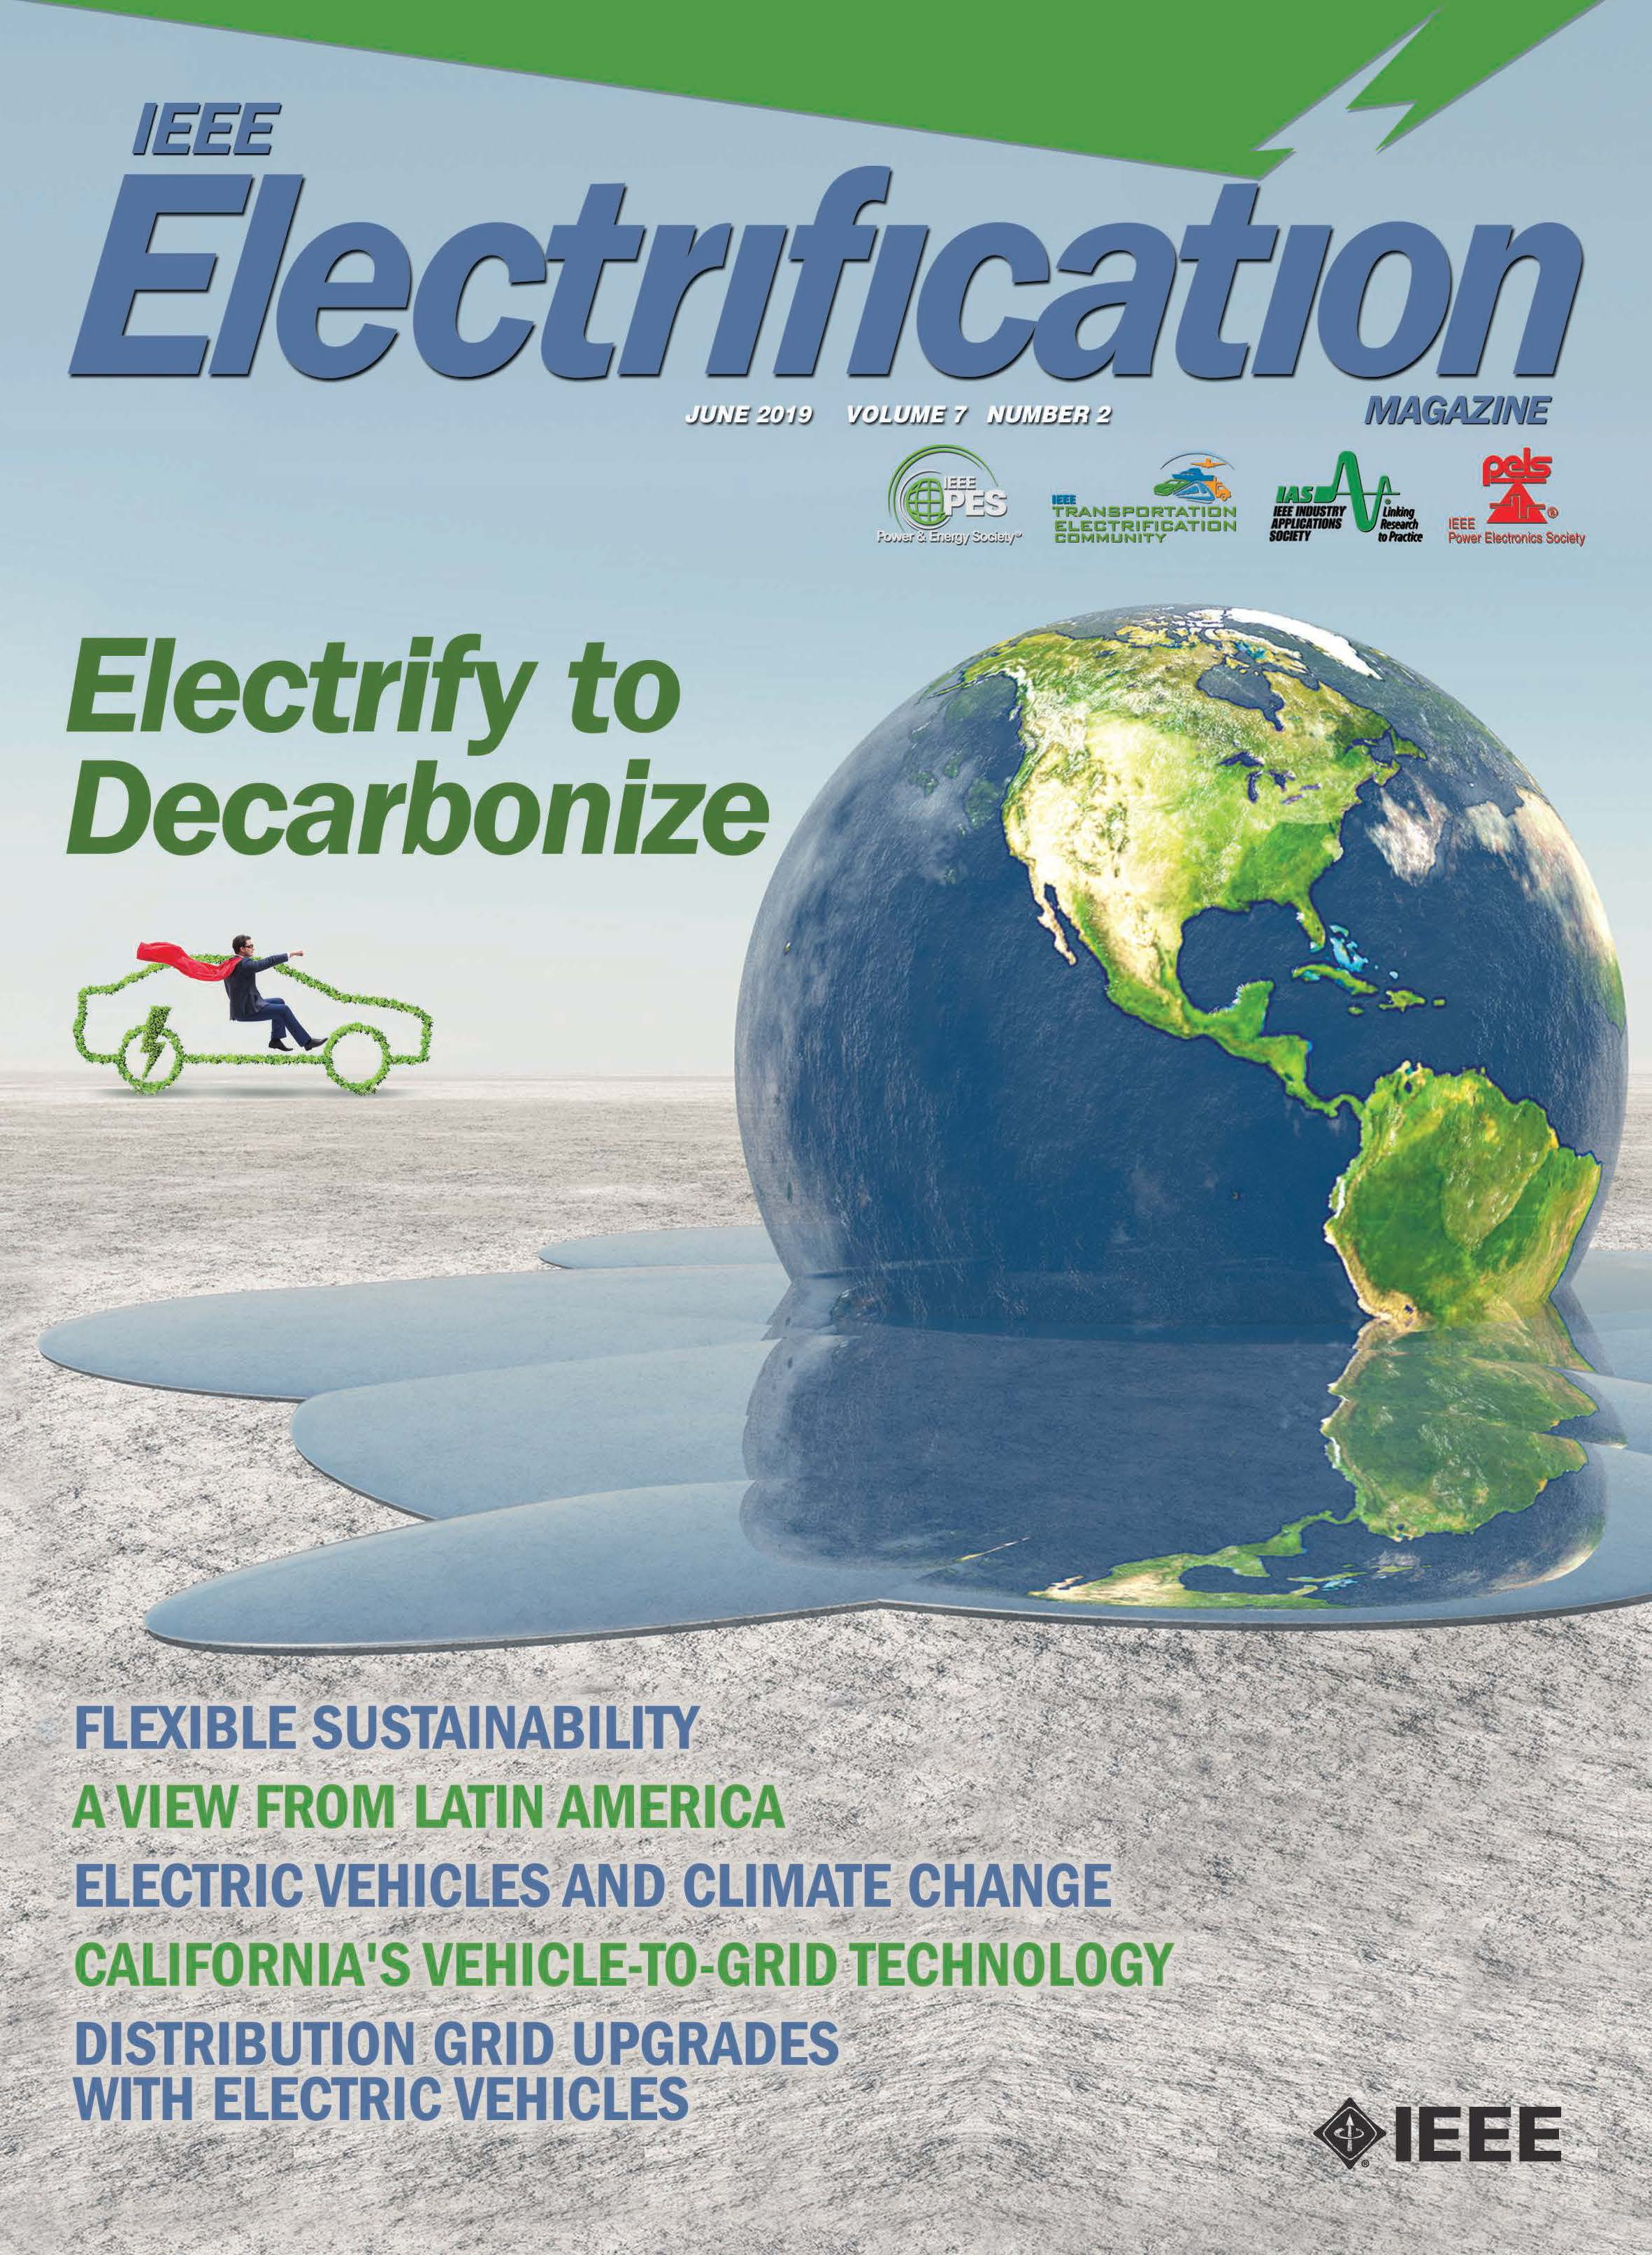 Search for Editor-in-Chief of the IEEE Electrification Magazine